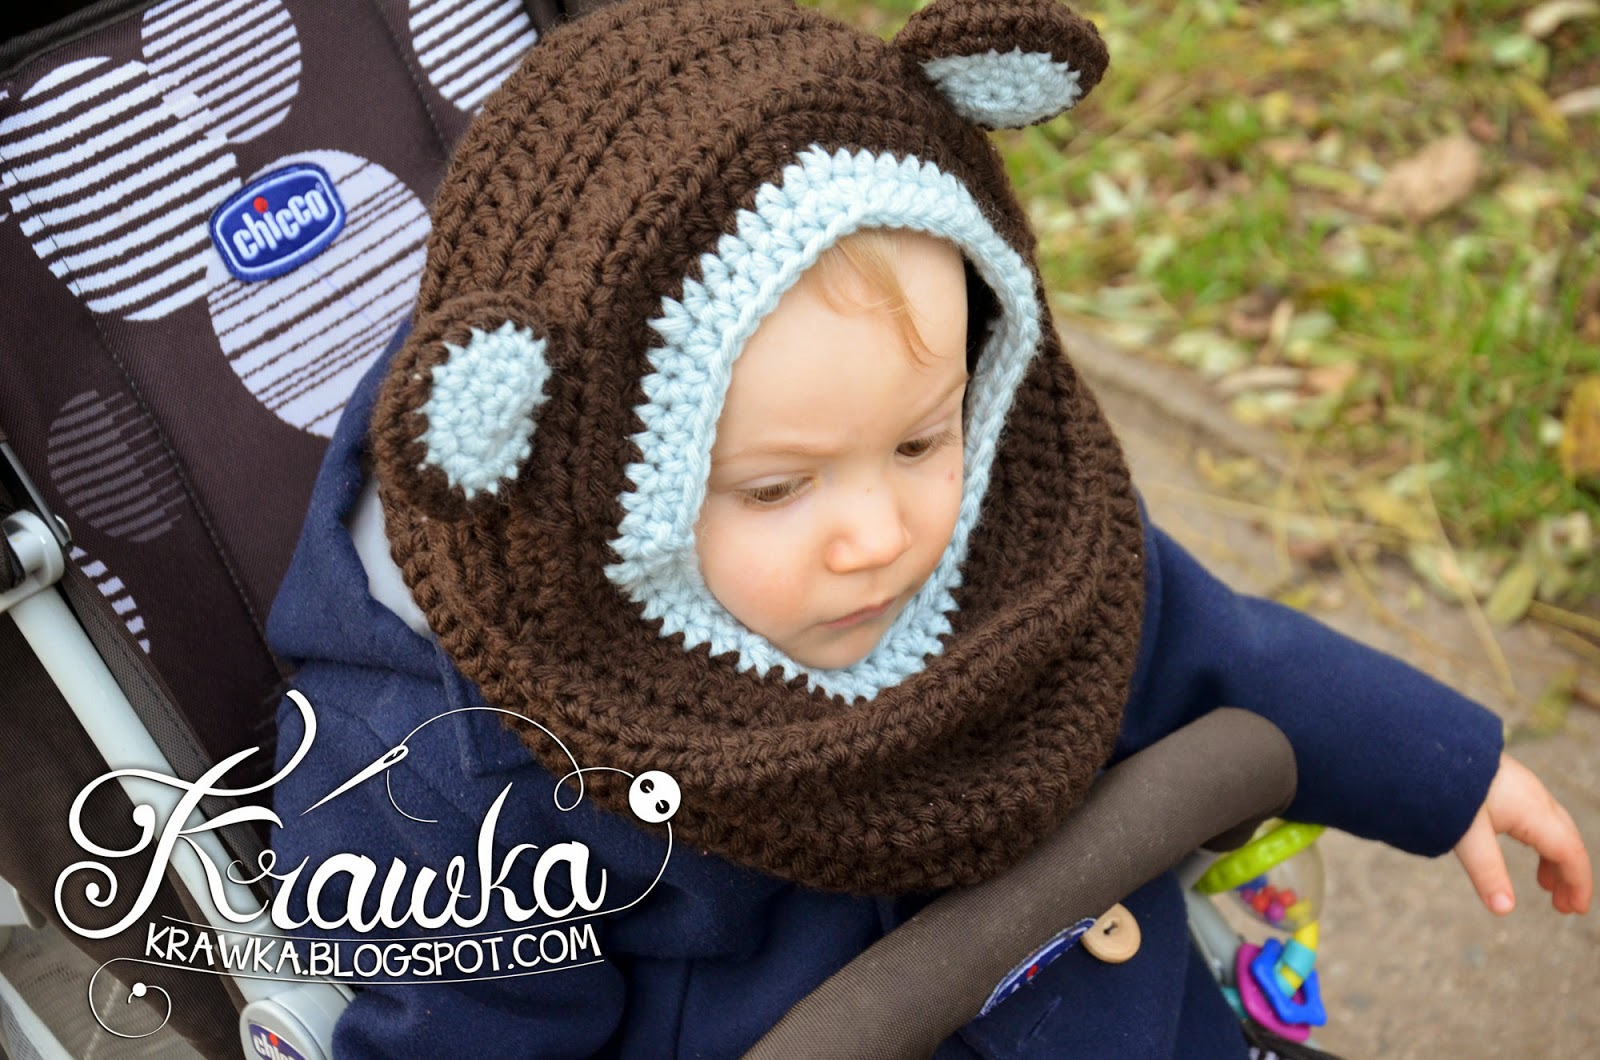 Krawka: Little bear - hooded cowl free crochet pattern. Brown bear with light blue ears, sooo cute and easy to make.